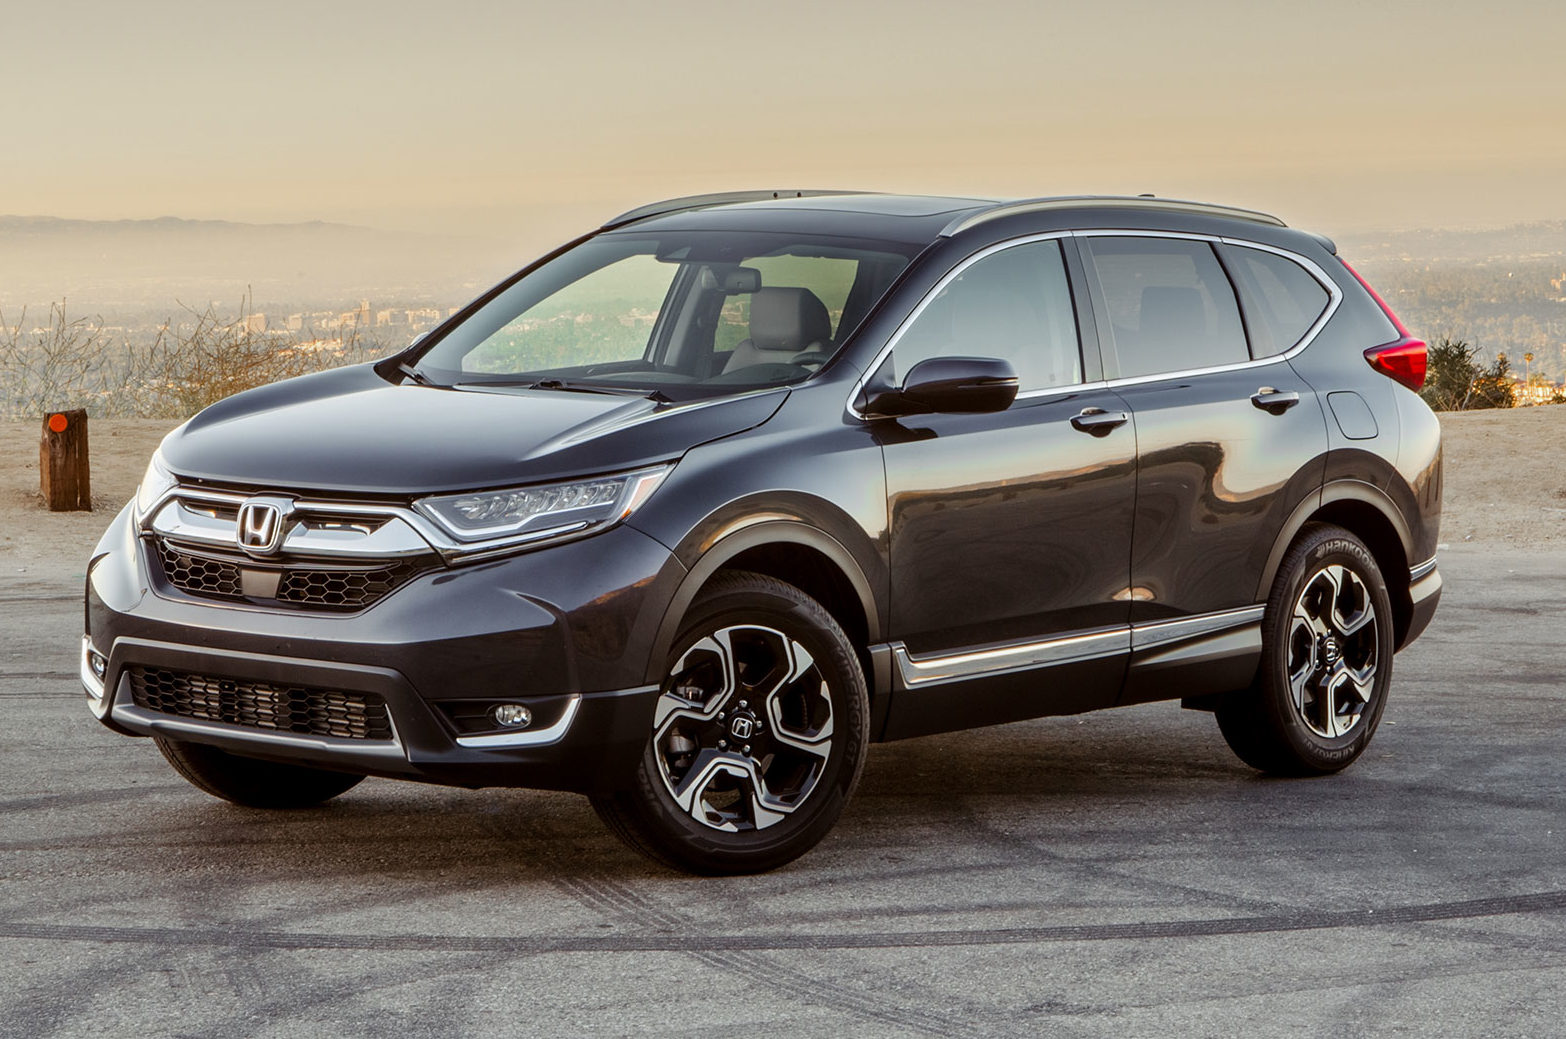 2018 honda cr v price goes up slightly automobile magazine for Honda crv price